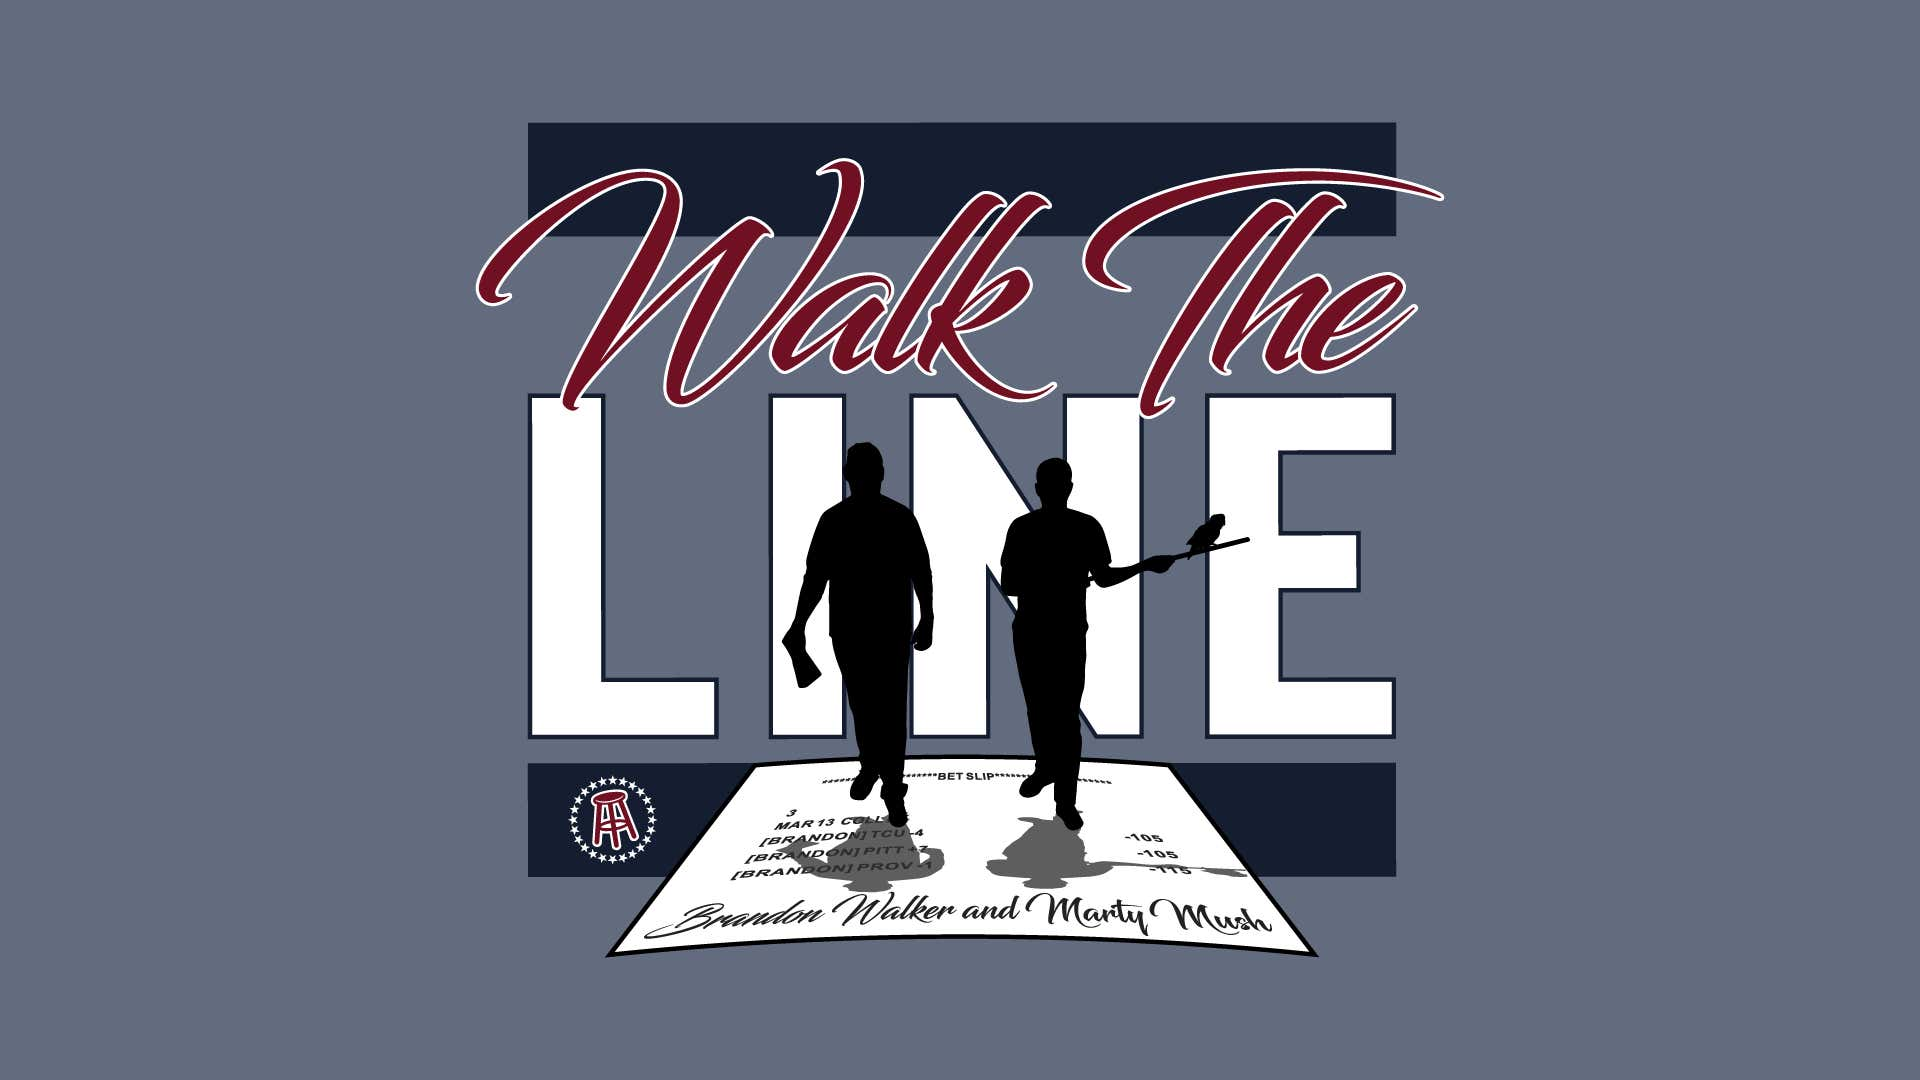 Today's @walktheline the return of @bwalkersec presented by @nascar